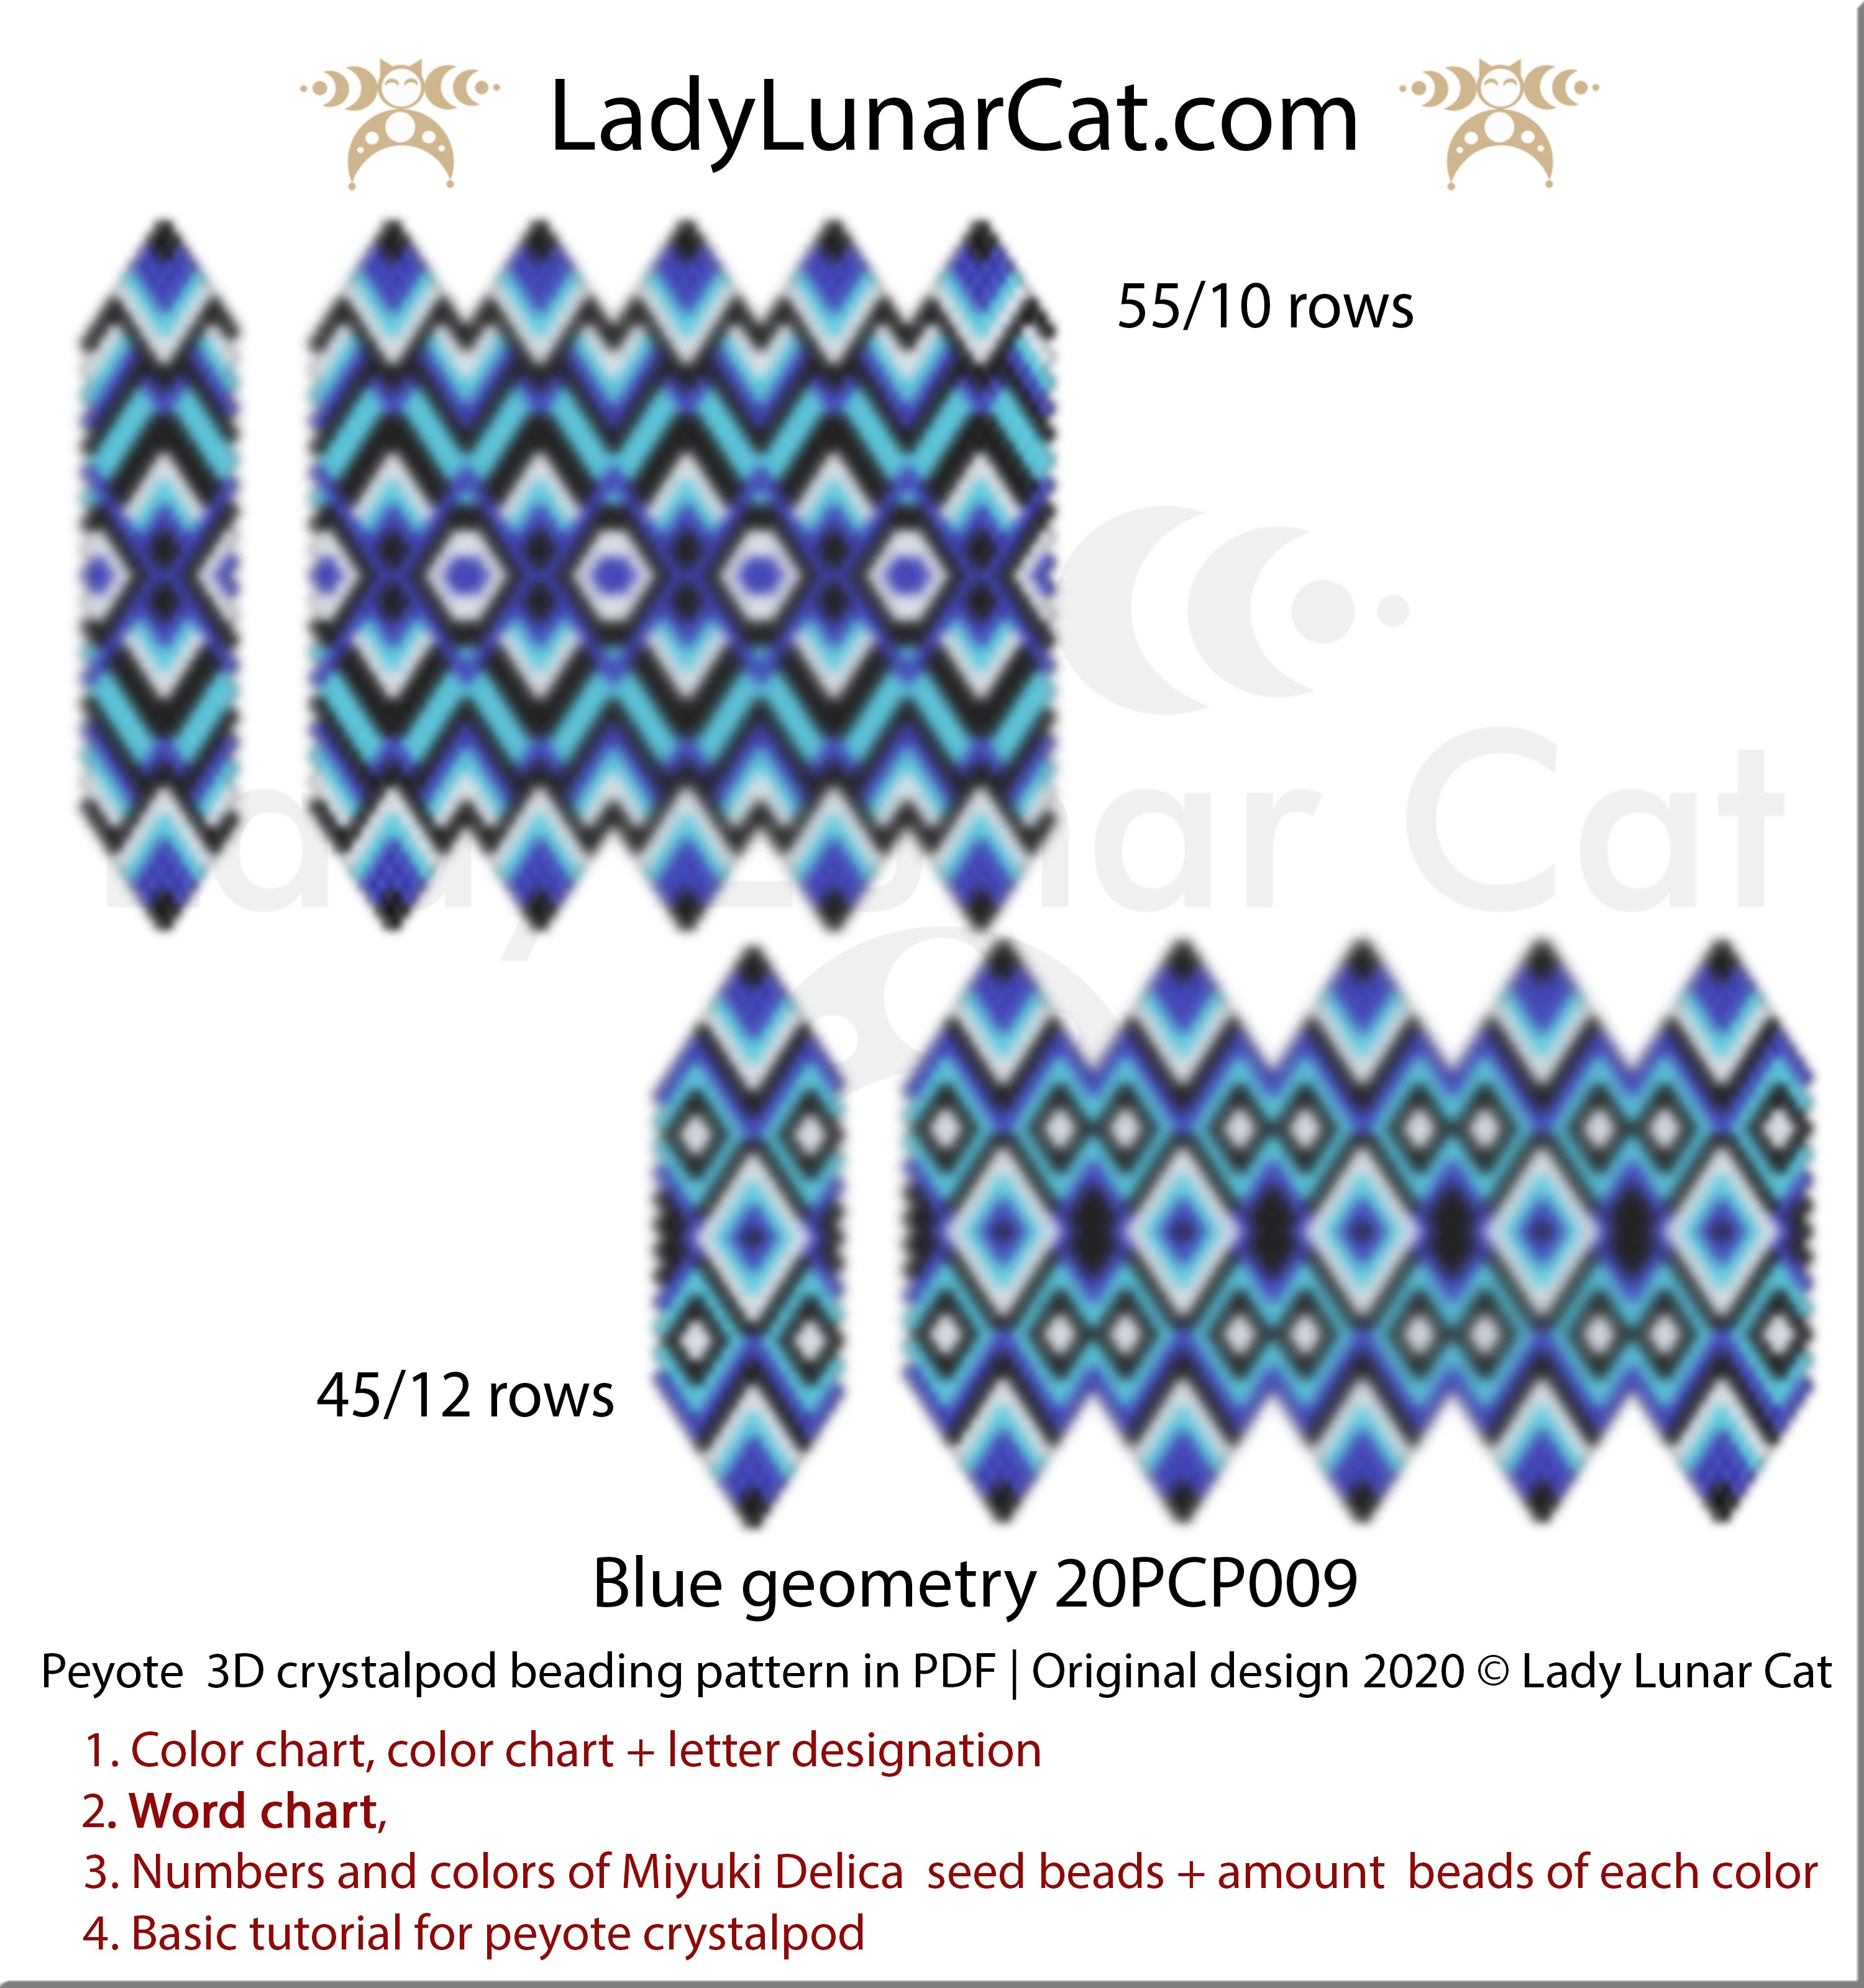 3d peyote crystalpod patterns for beading by Lady Lunar Cat